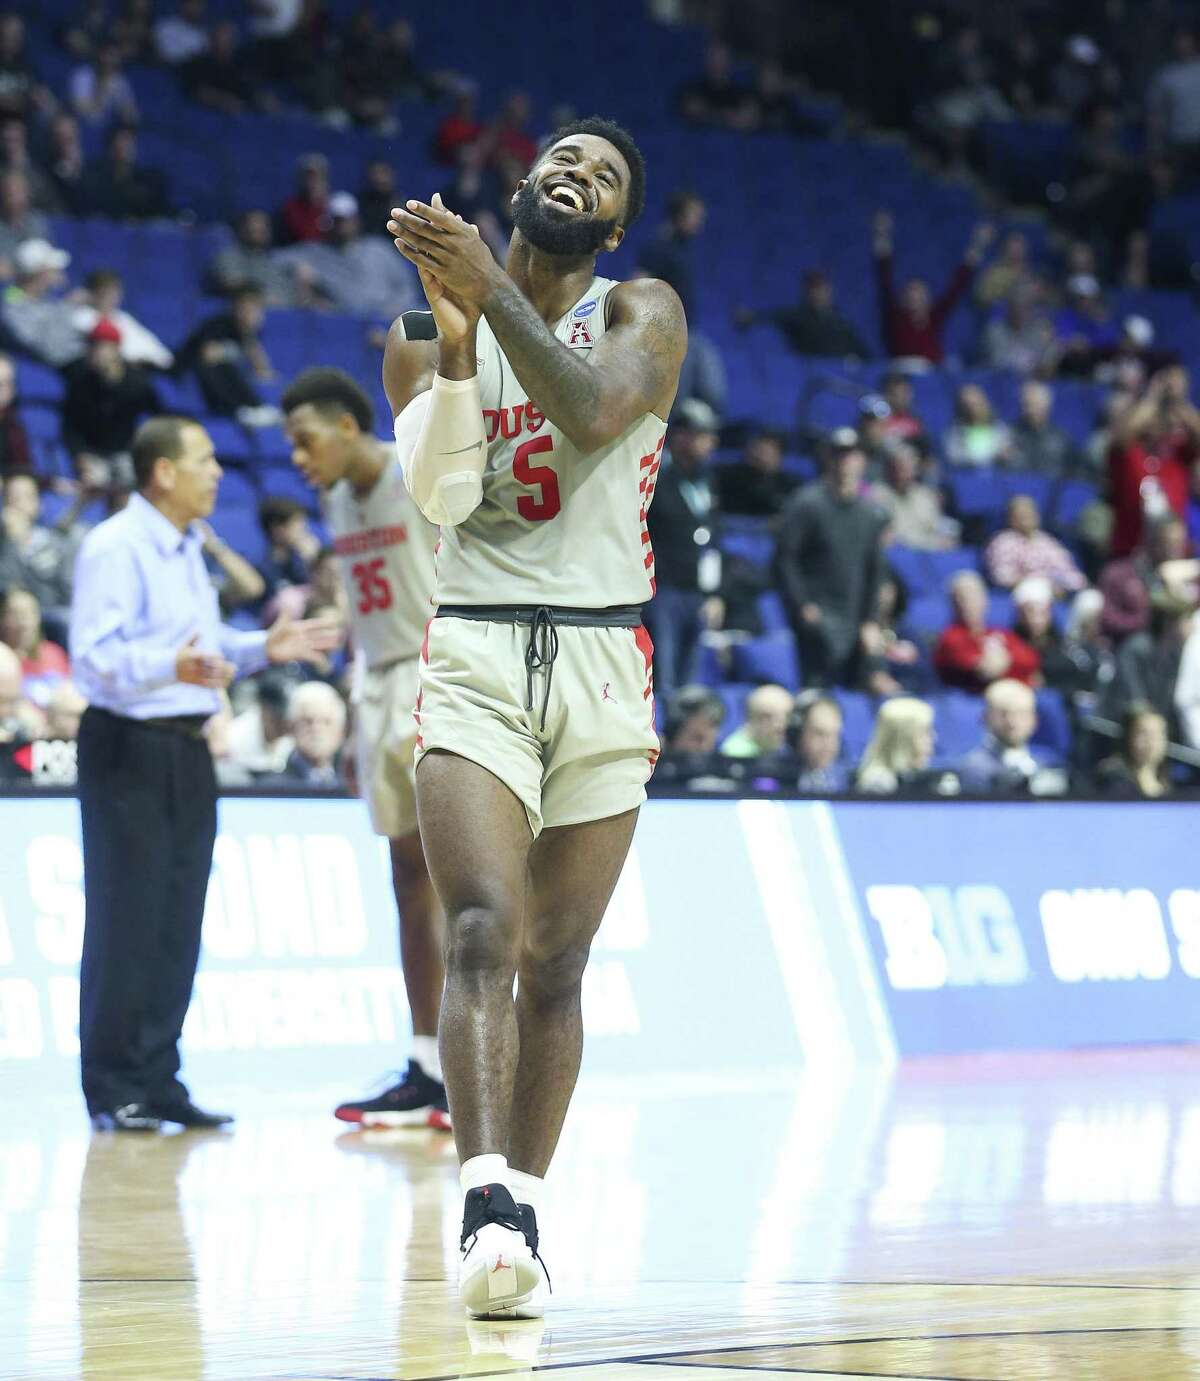 UH guard Corey Davis Jr., who had a game-high 21 points, basks in the realization the Cougars are going to Kansas City.